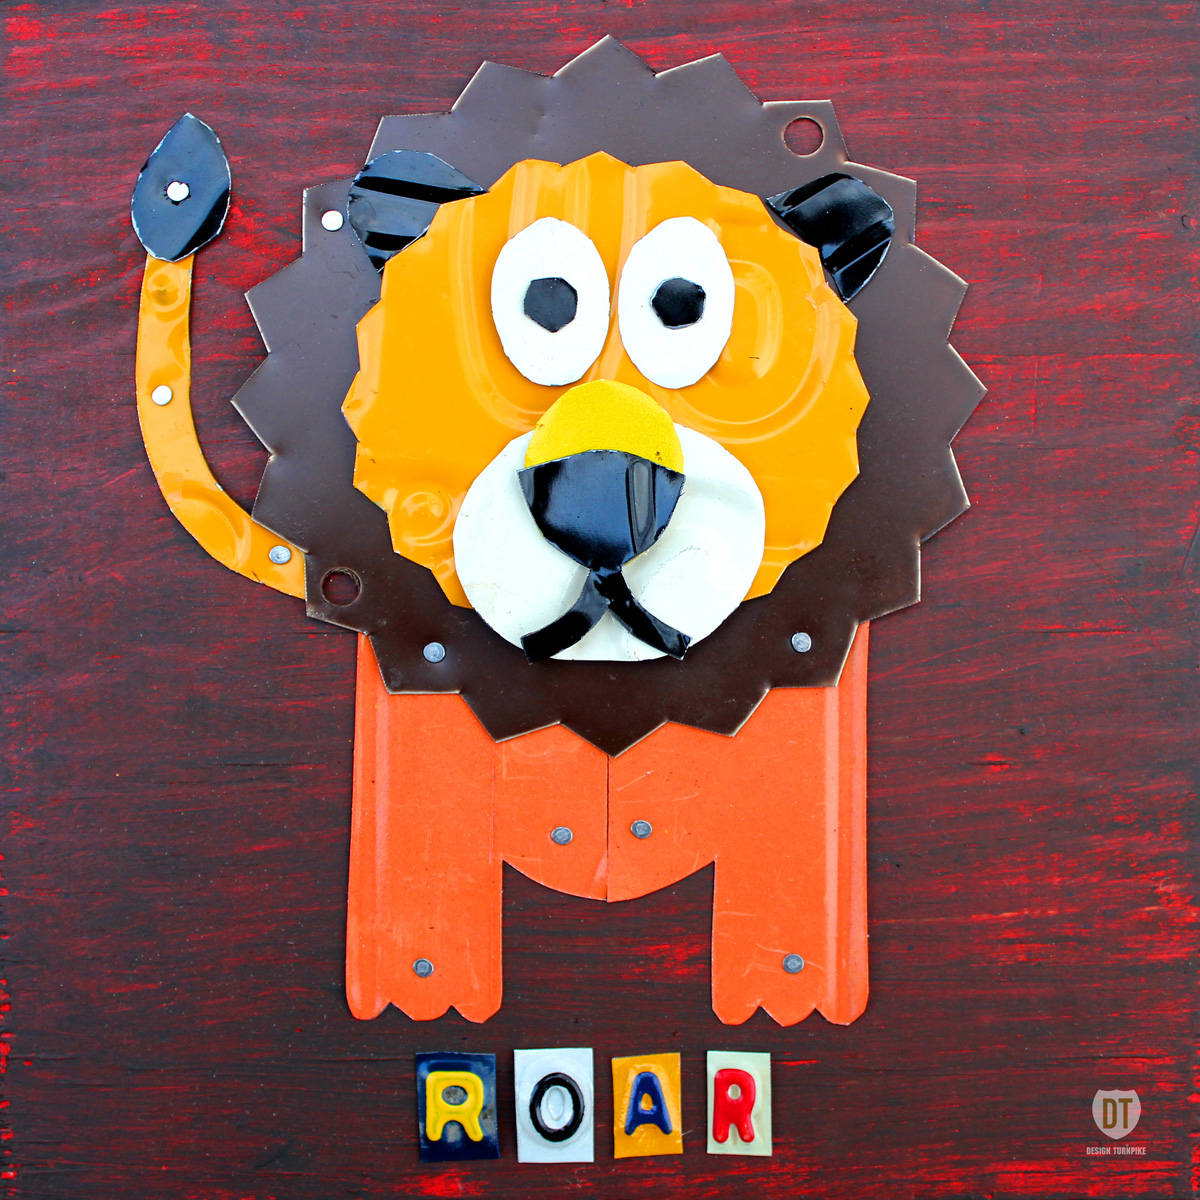 http://3.bp.blogspot.com/-W-_LxbNHKyQ/UKucT921uhI/AAAAAAAADb8/JxKJK96ACkg/s1600/roar_the_lion_license_plate_art_1200.jpg